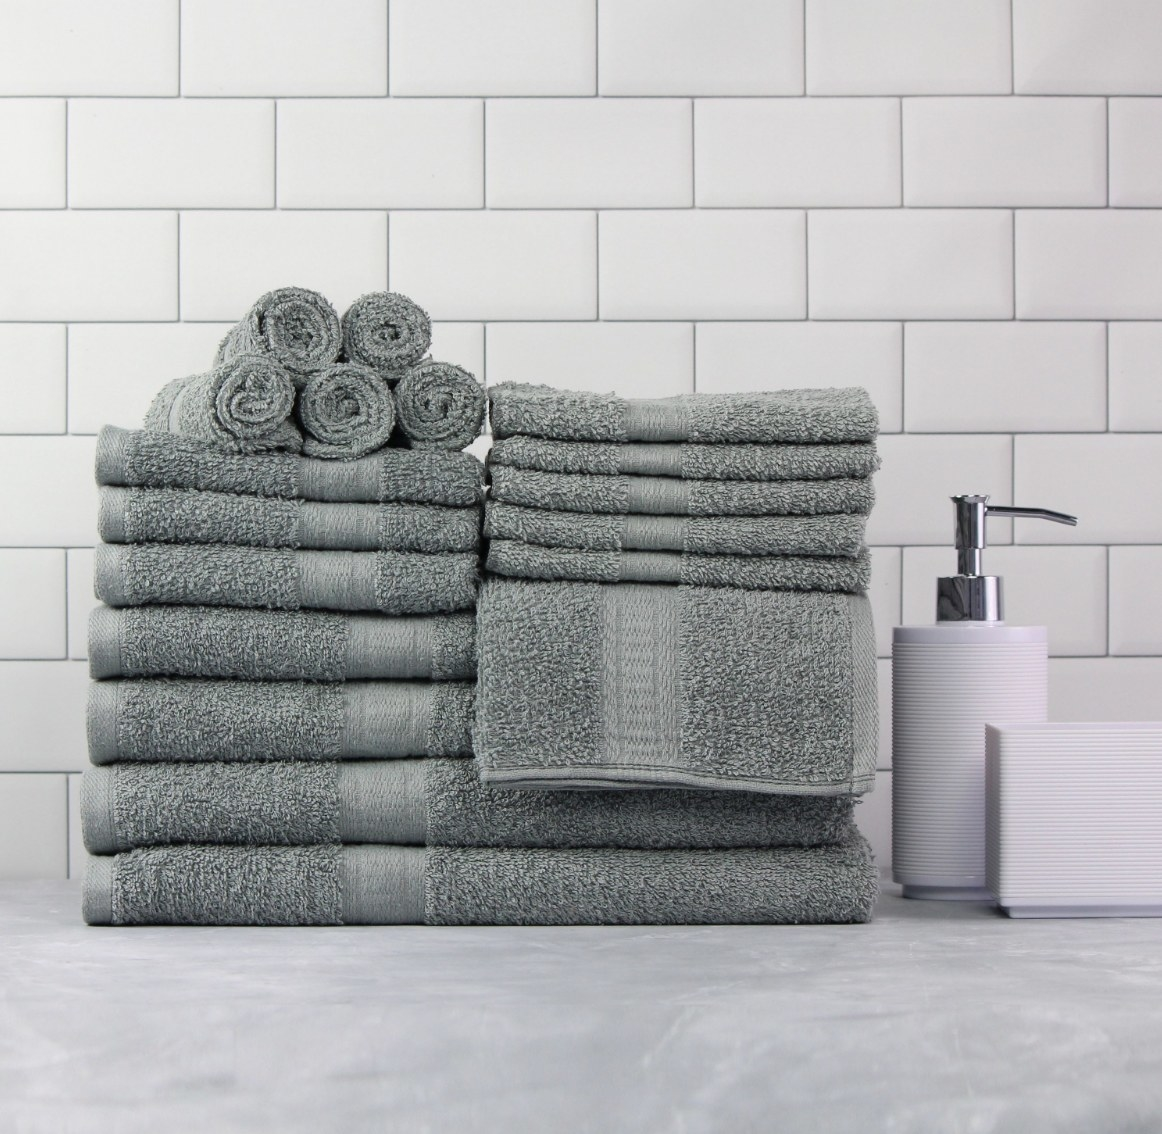 The 18-piece towel set in light school grey